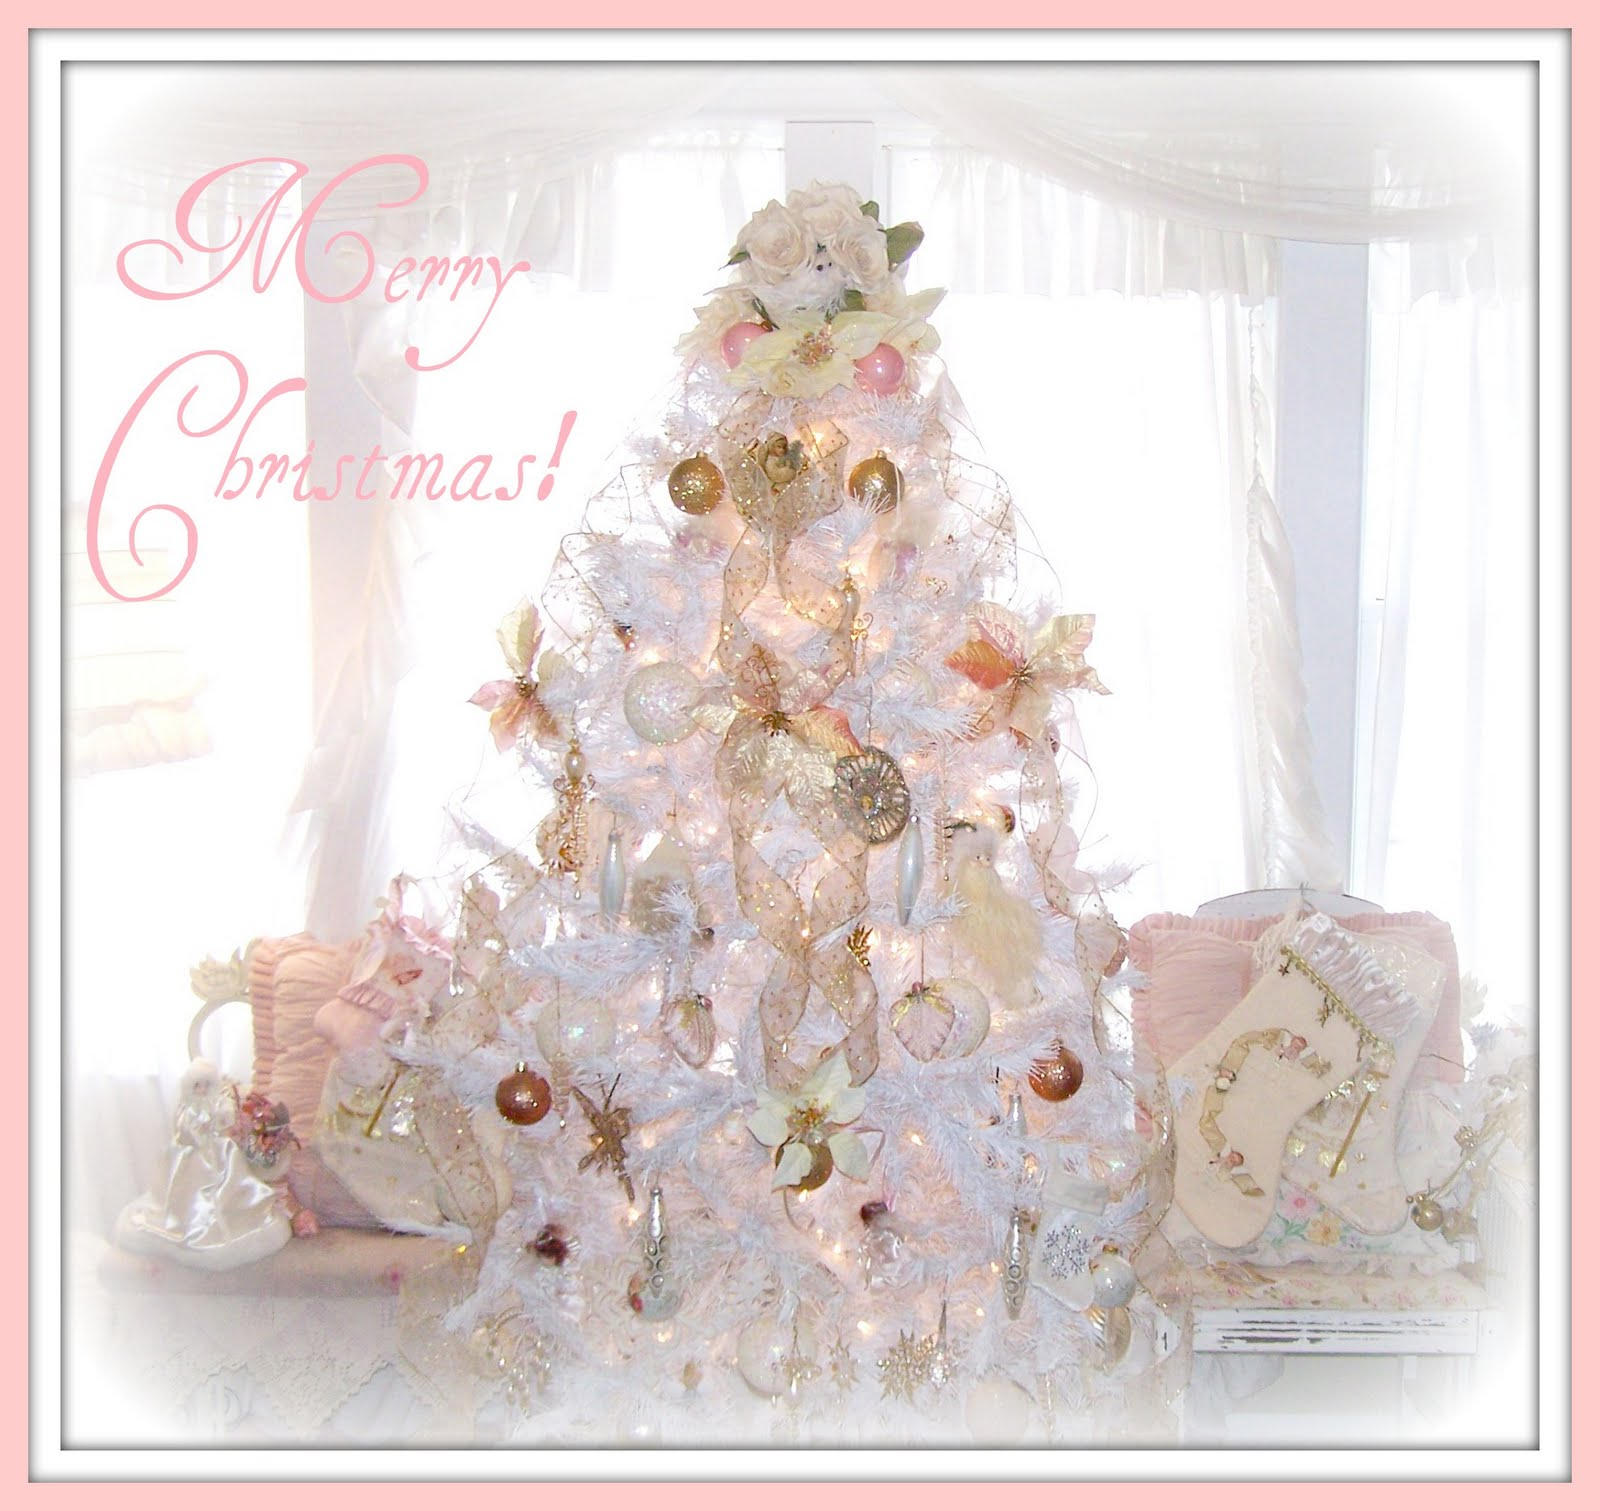 Olivia's Romantic Home: Merry Shabby Chic Pink Christmas!